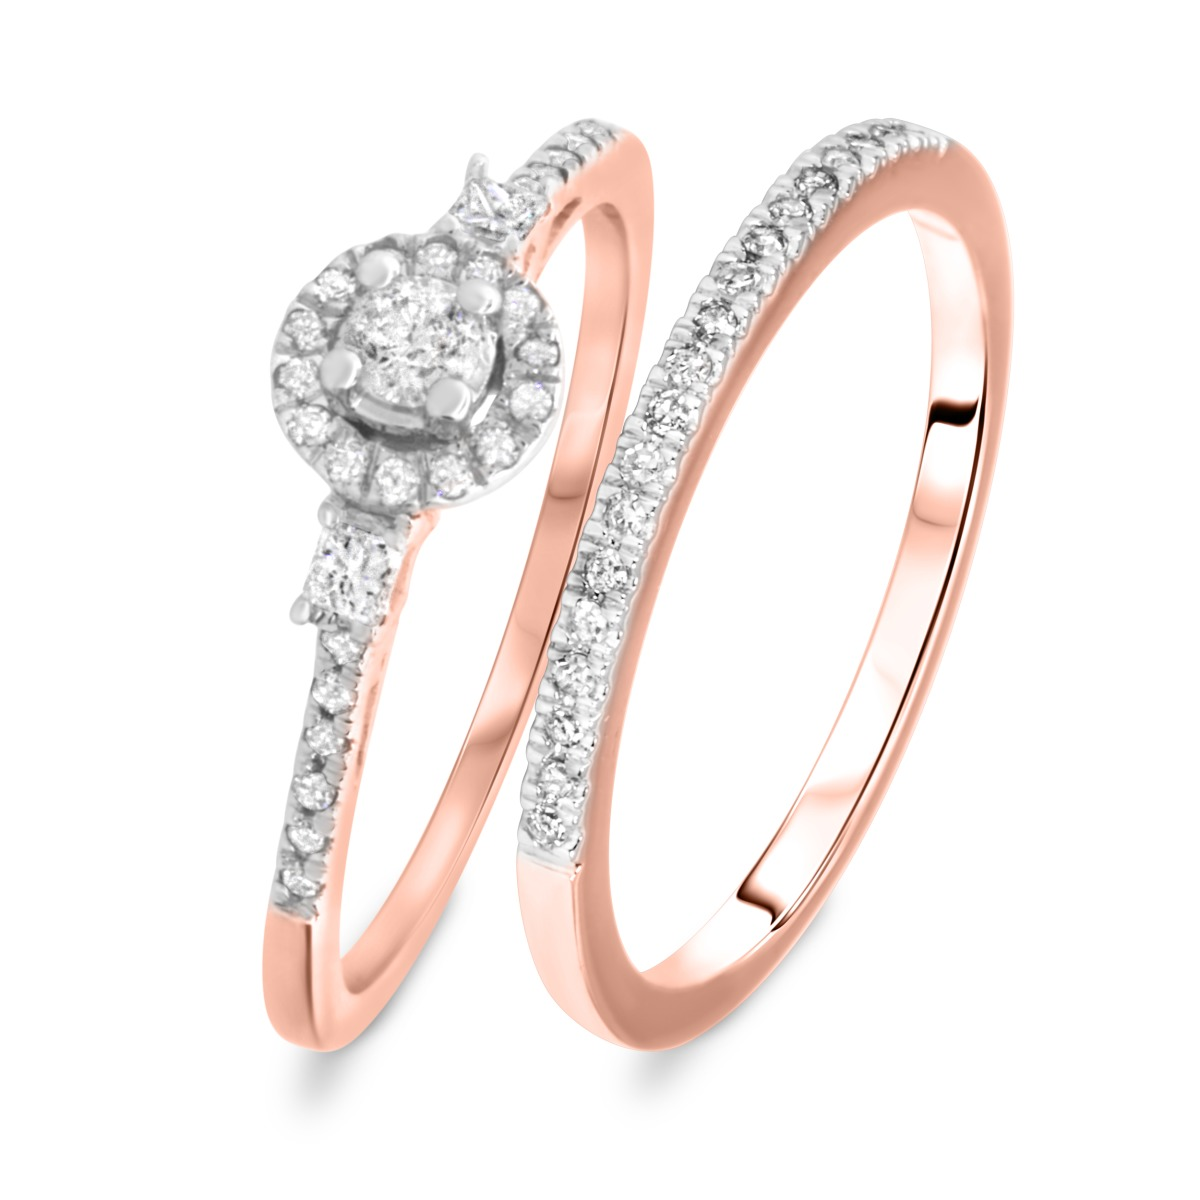 1/3 CT. T.W. Round Cut Diamond Ladies Bridal Wedding Ring Set 10K Rose Gold